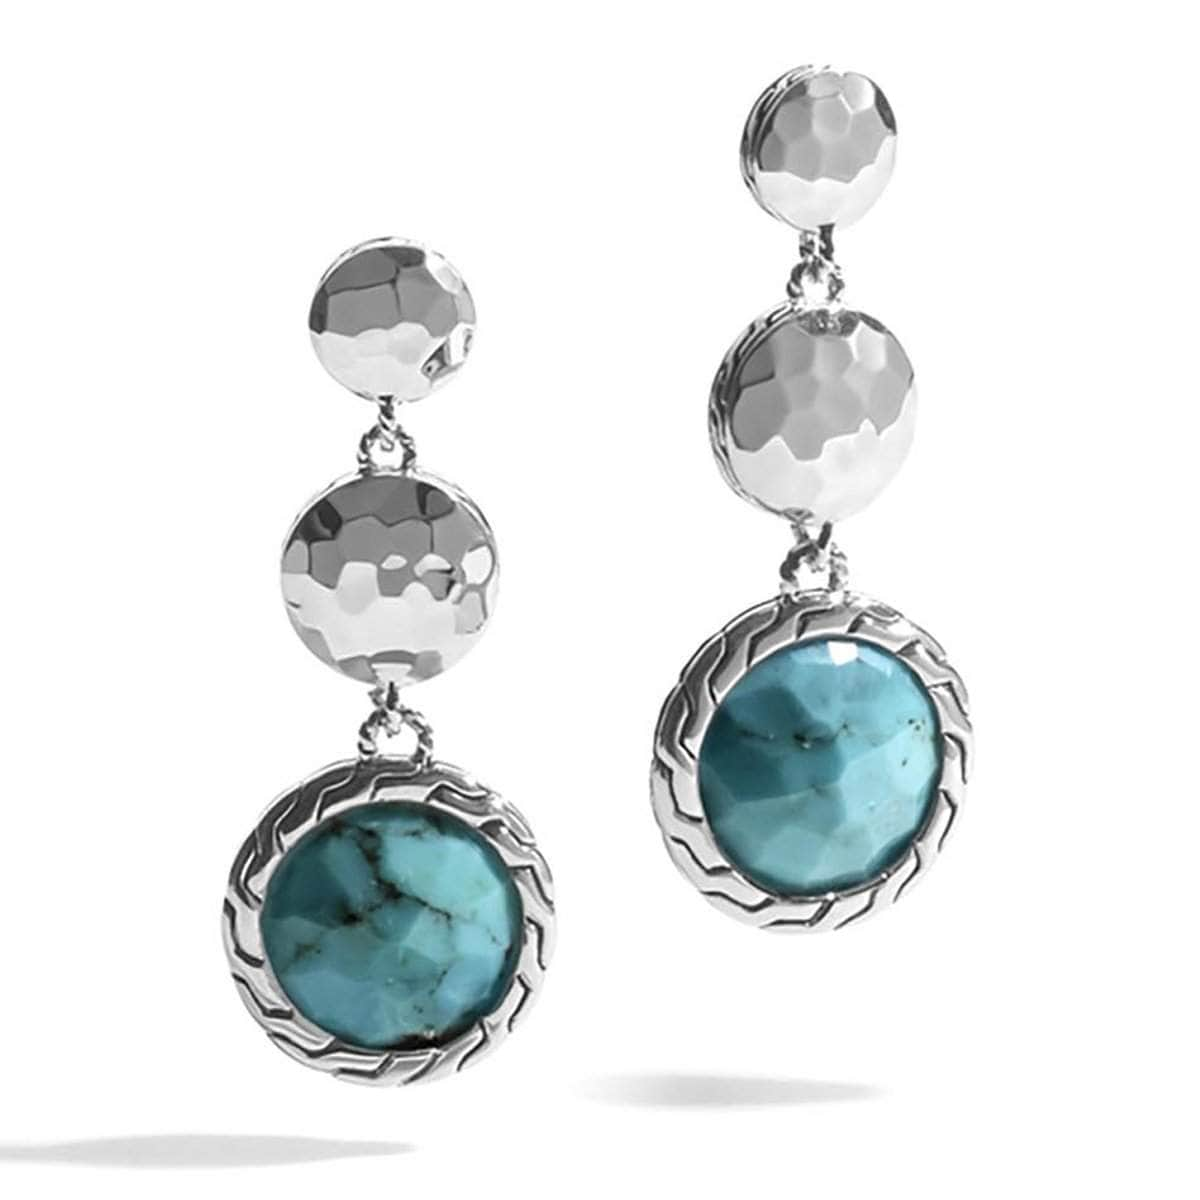 Dot Hammered Silver & Turquoise Earrings - EBS72371TQBMA-John Hardy-Renee Taylor Gallery